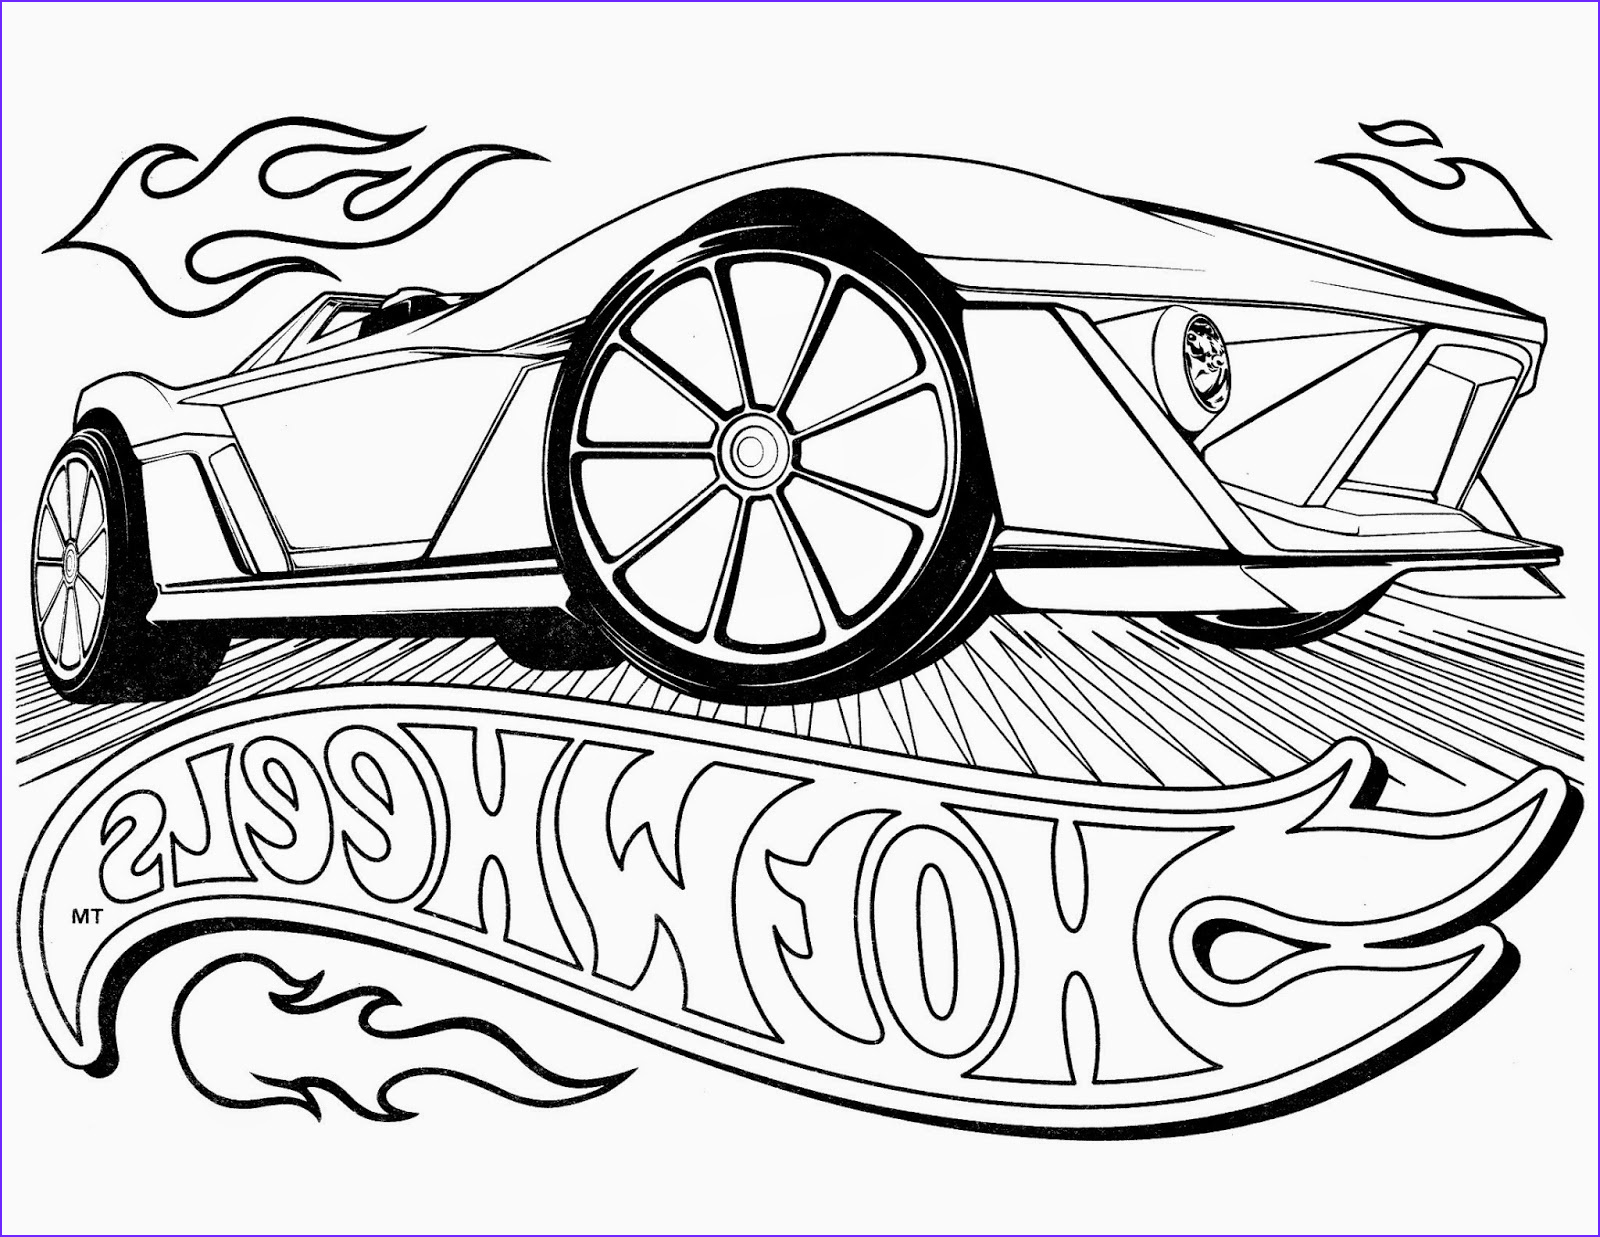 Hot Wheels Coloring Book Awesome Photography Hot Wheels Racing League Hot Wheels Coloring Pages Set 4